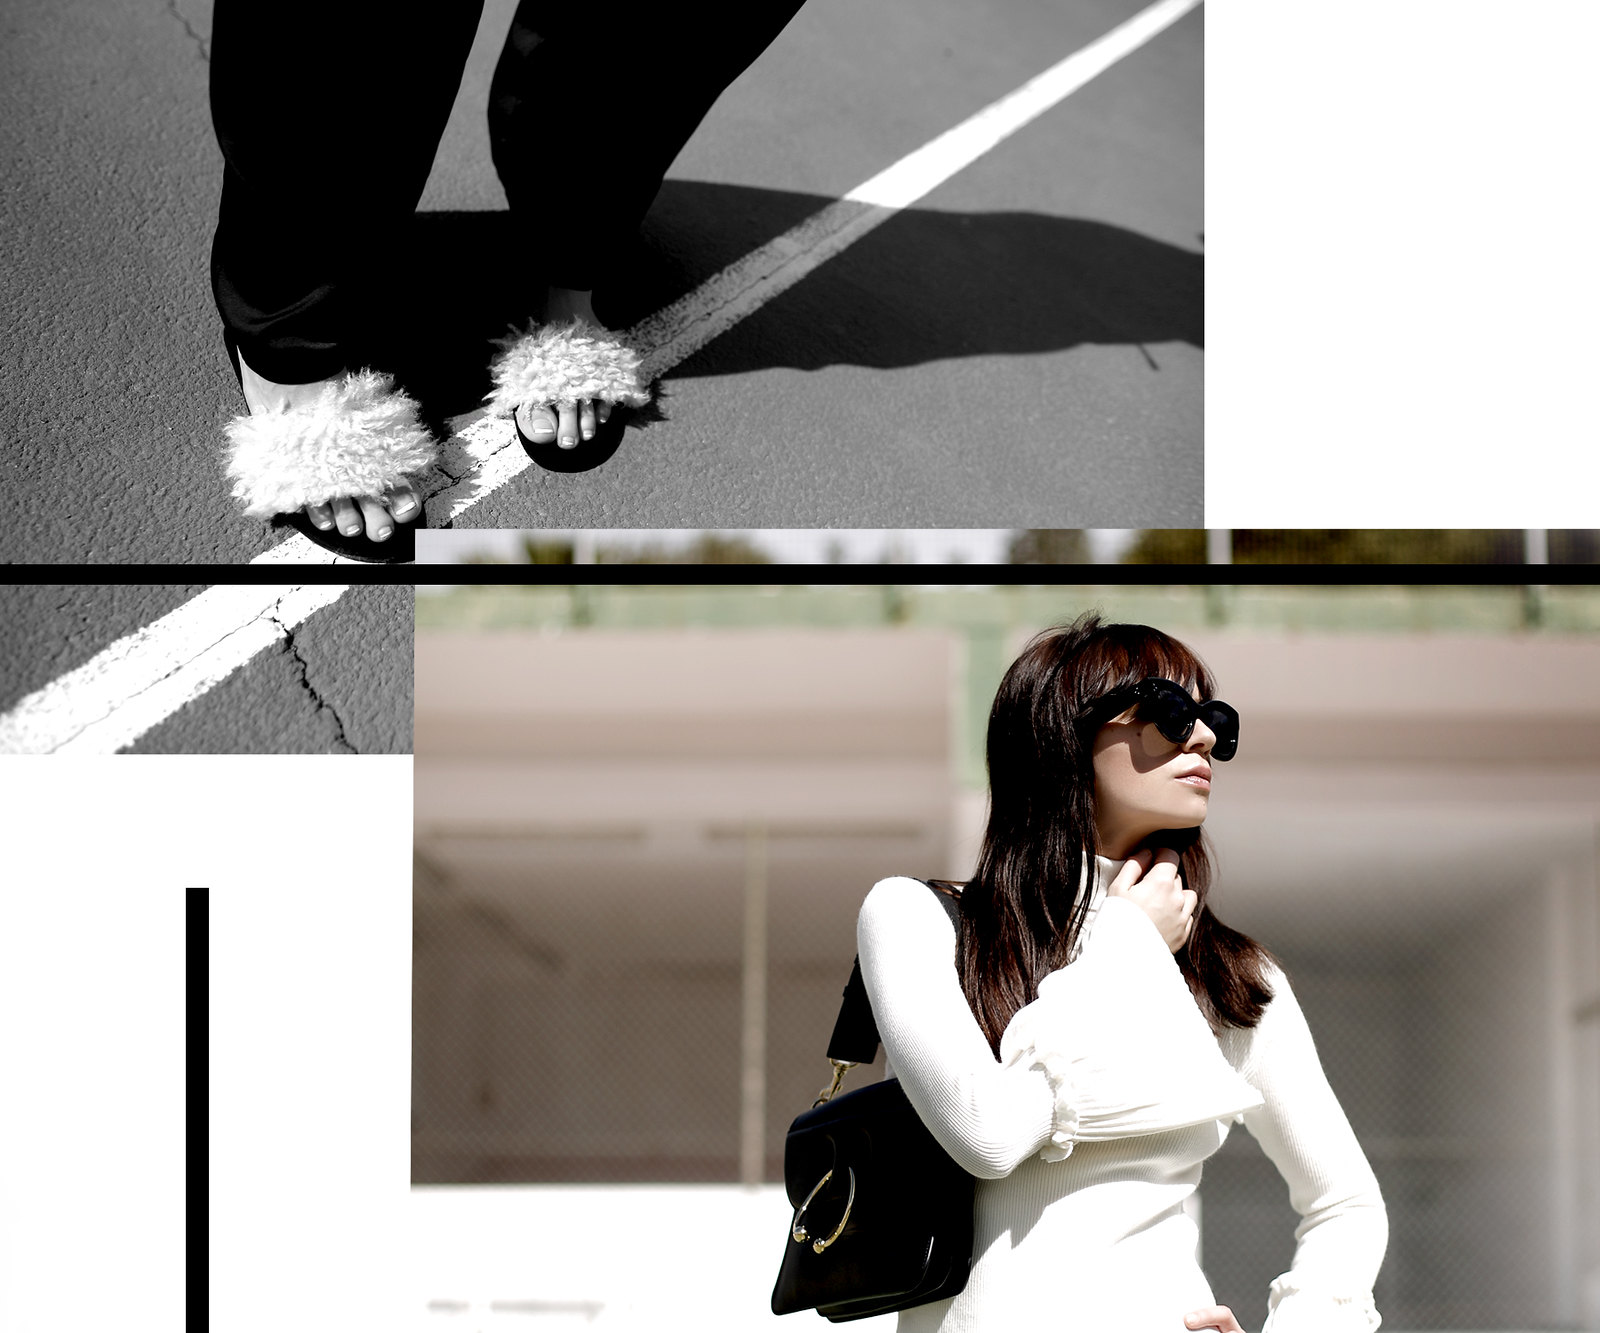 tennis edgy styling editorial photography chicwish white knit bell sleeves silk pants summer heat style céline audrey sunglasses j.w.anderson pierce bag zara sandals shadows fashionblogger outfit ootd modeblog cats & dogs ricarda schernus düsseldorf 4